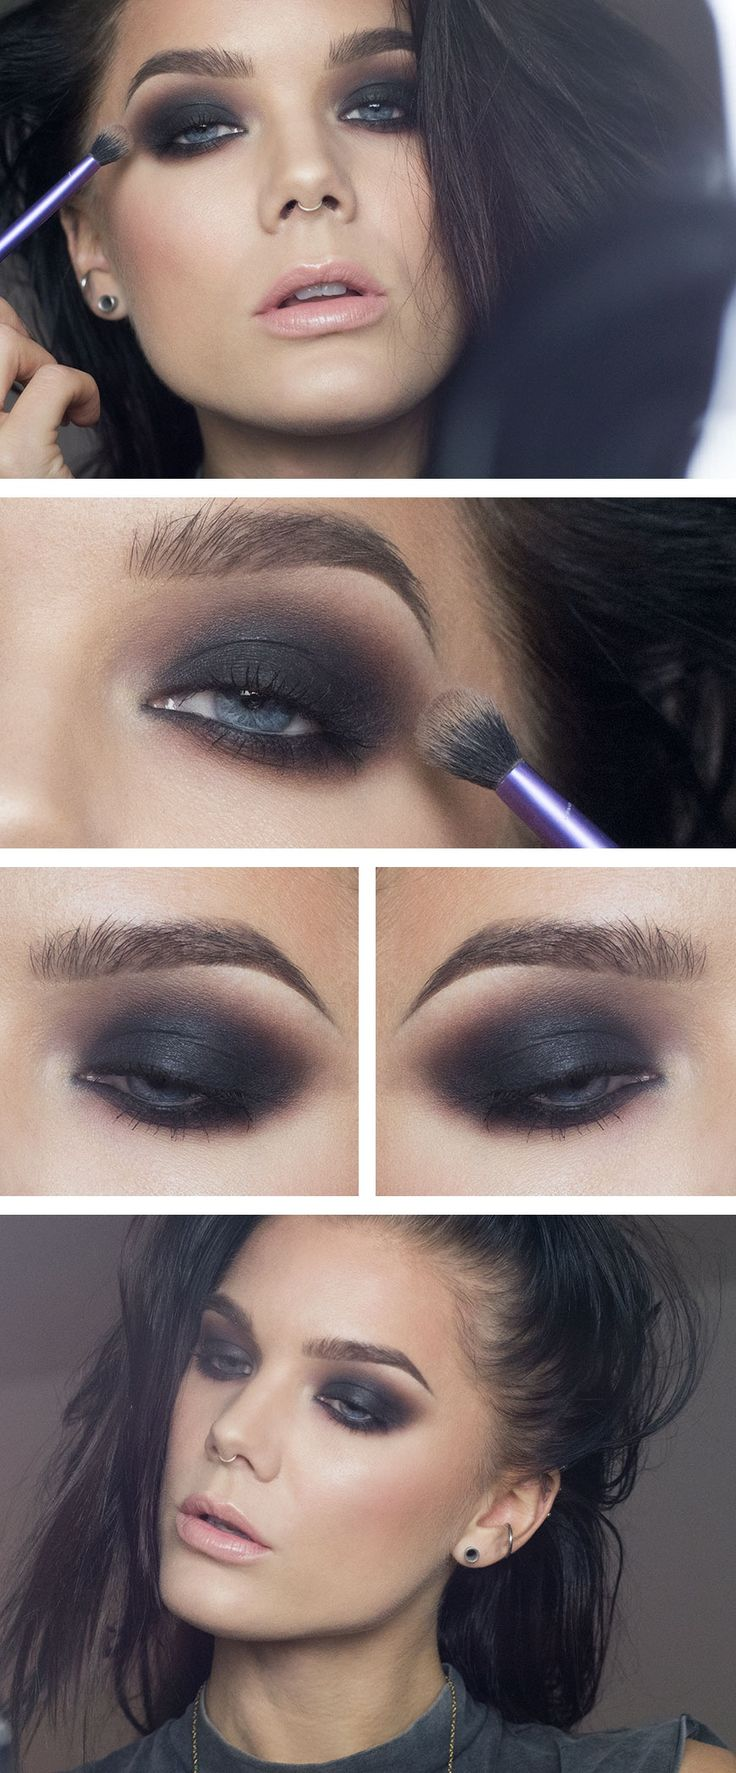 "Linda Hallberg makeup look - ""The Classic Smokey Eye"" - classic dramatic black smokey eye and light nude pink lips. Great makeup for a night out."